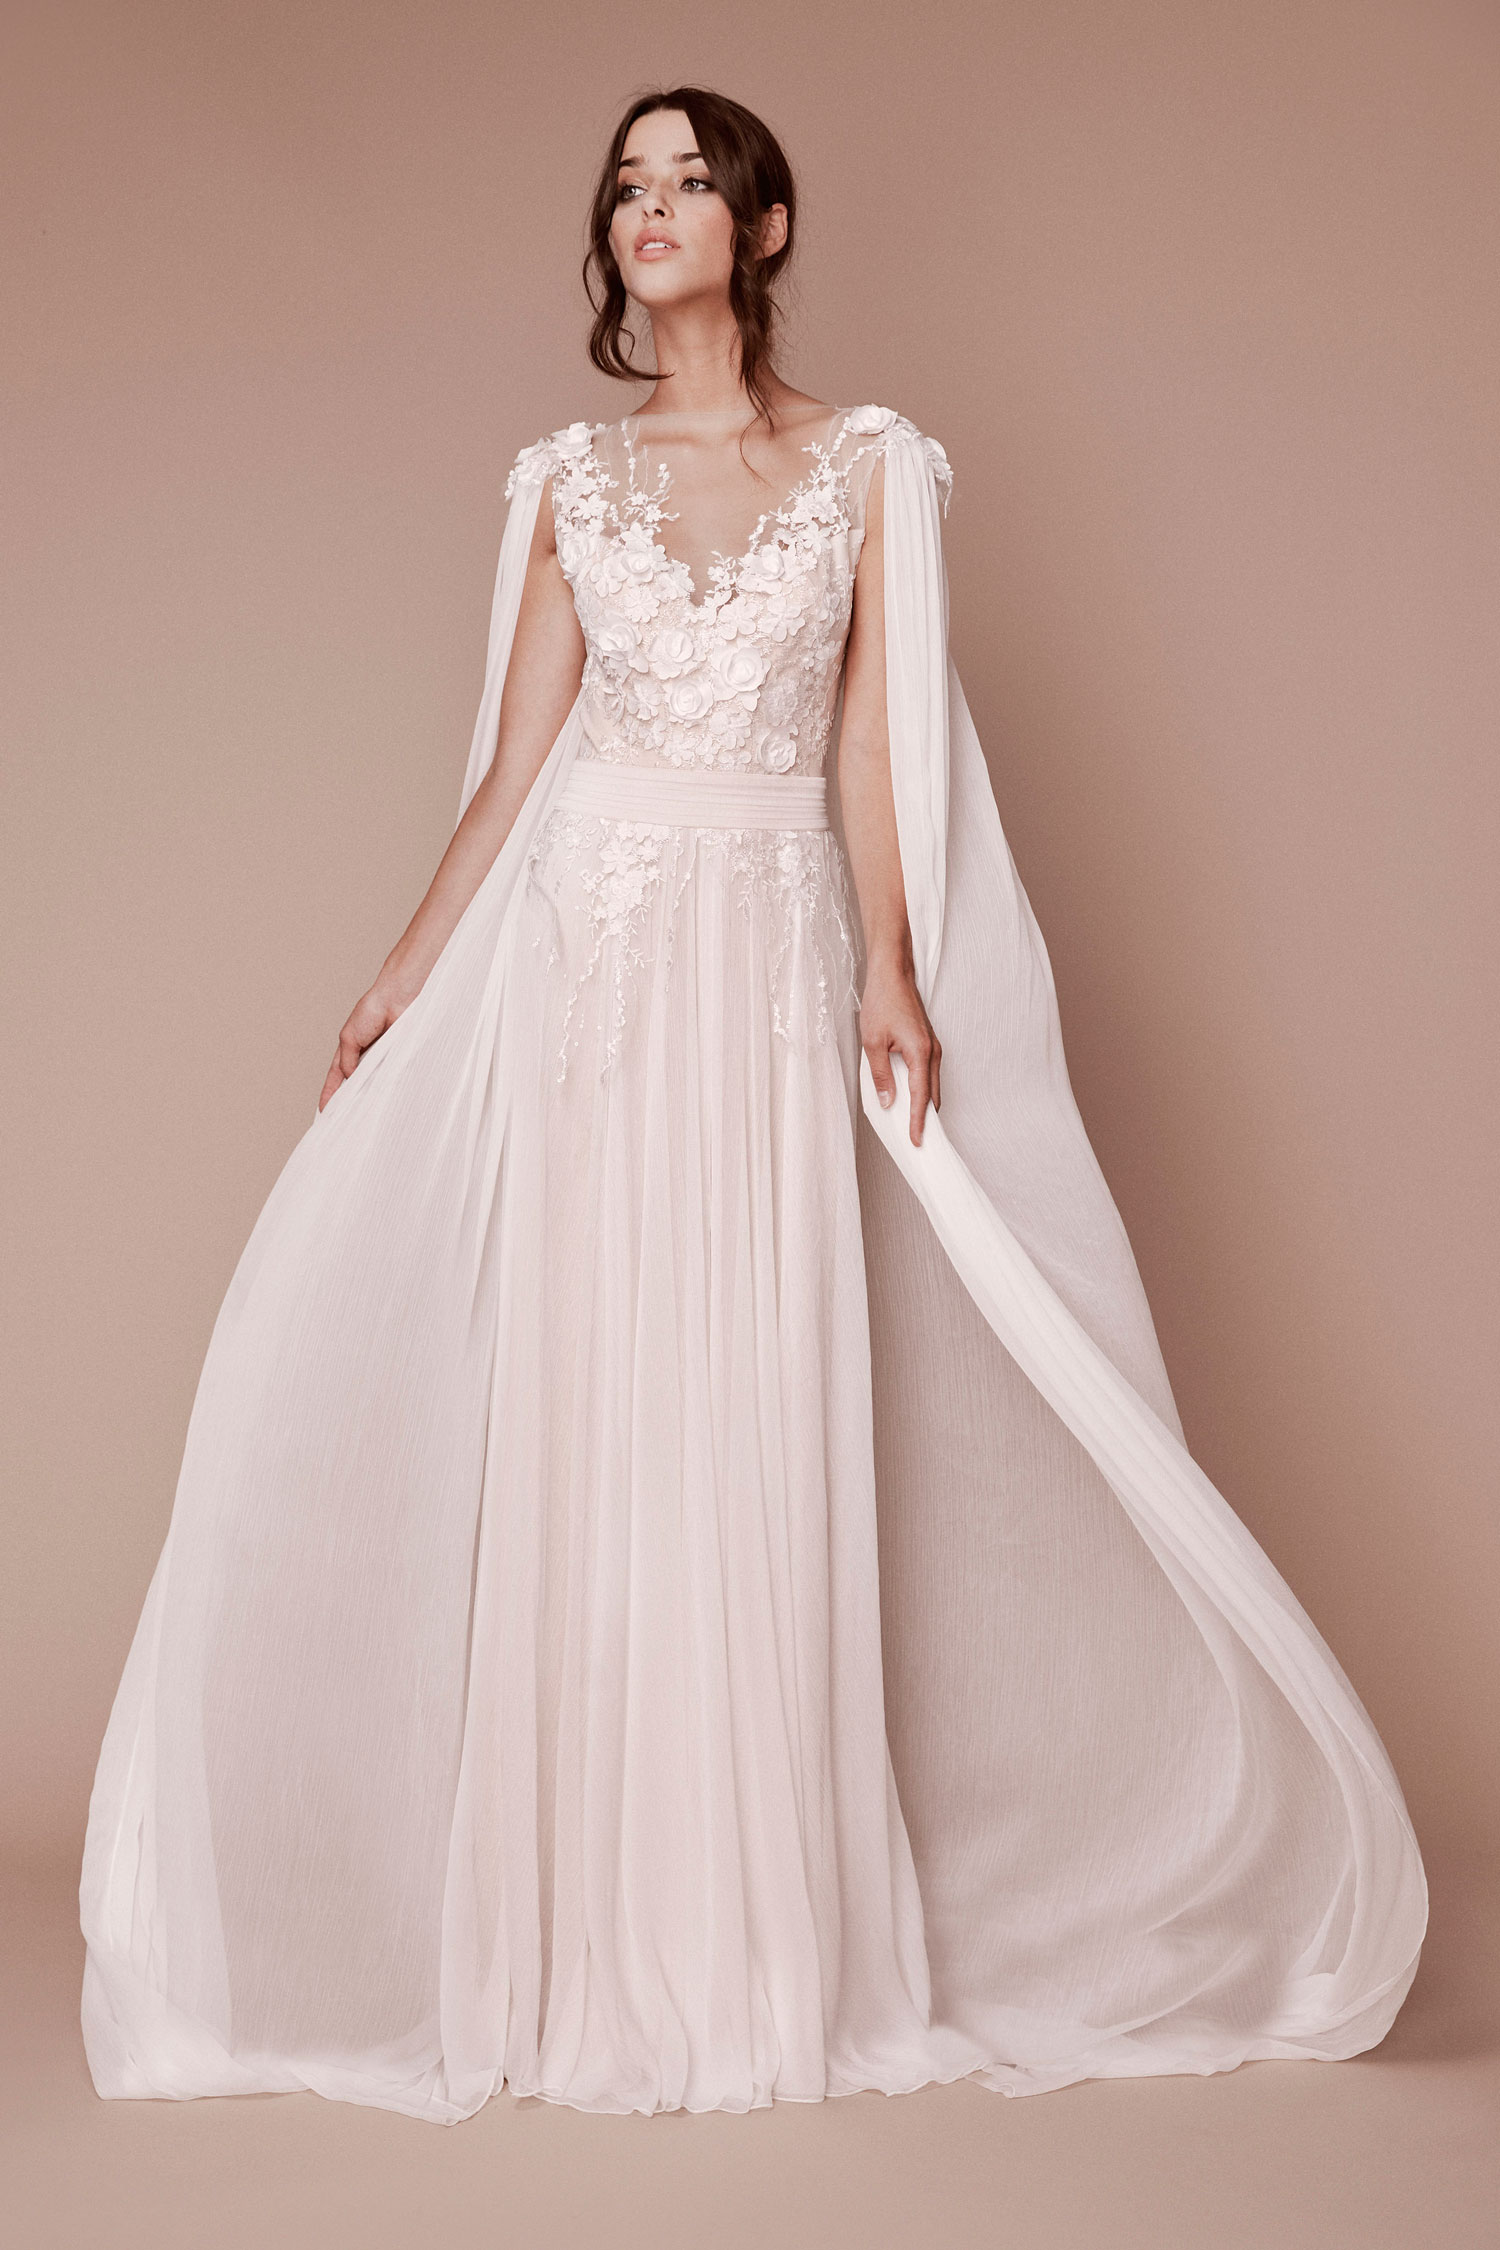 Halloween-inspired wedding dress with cape tadashi shoji fall 2019